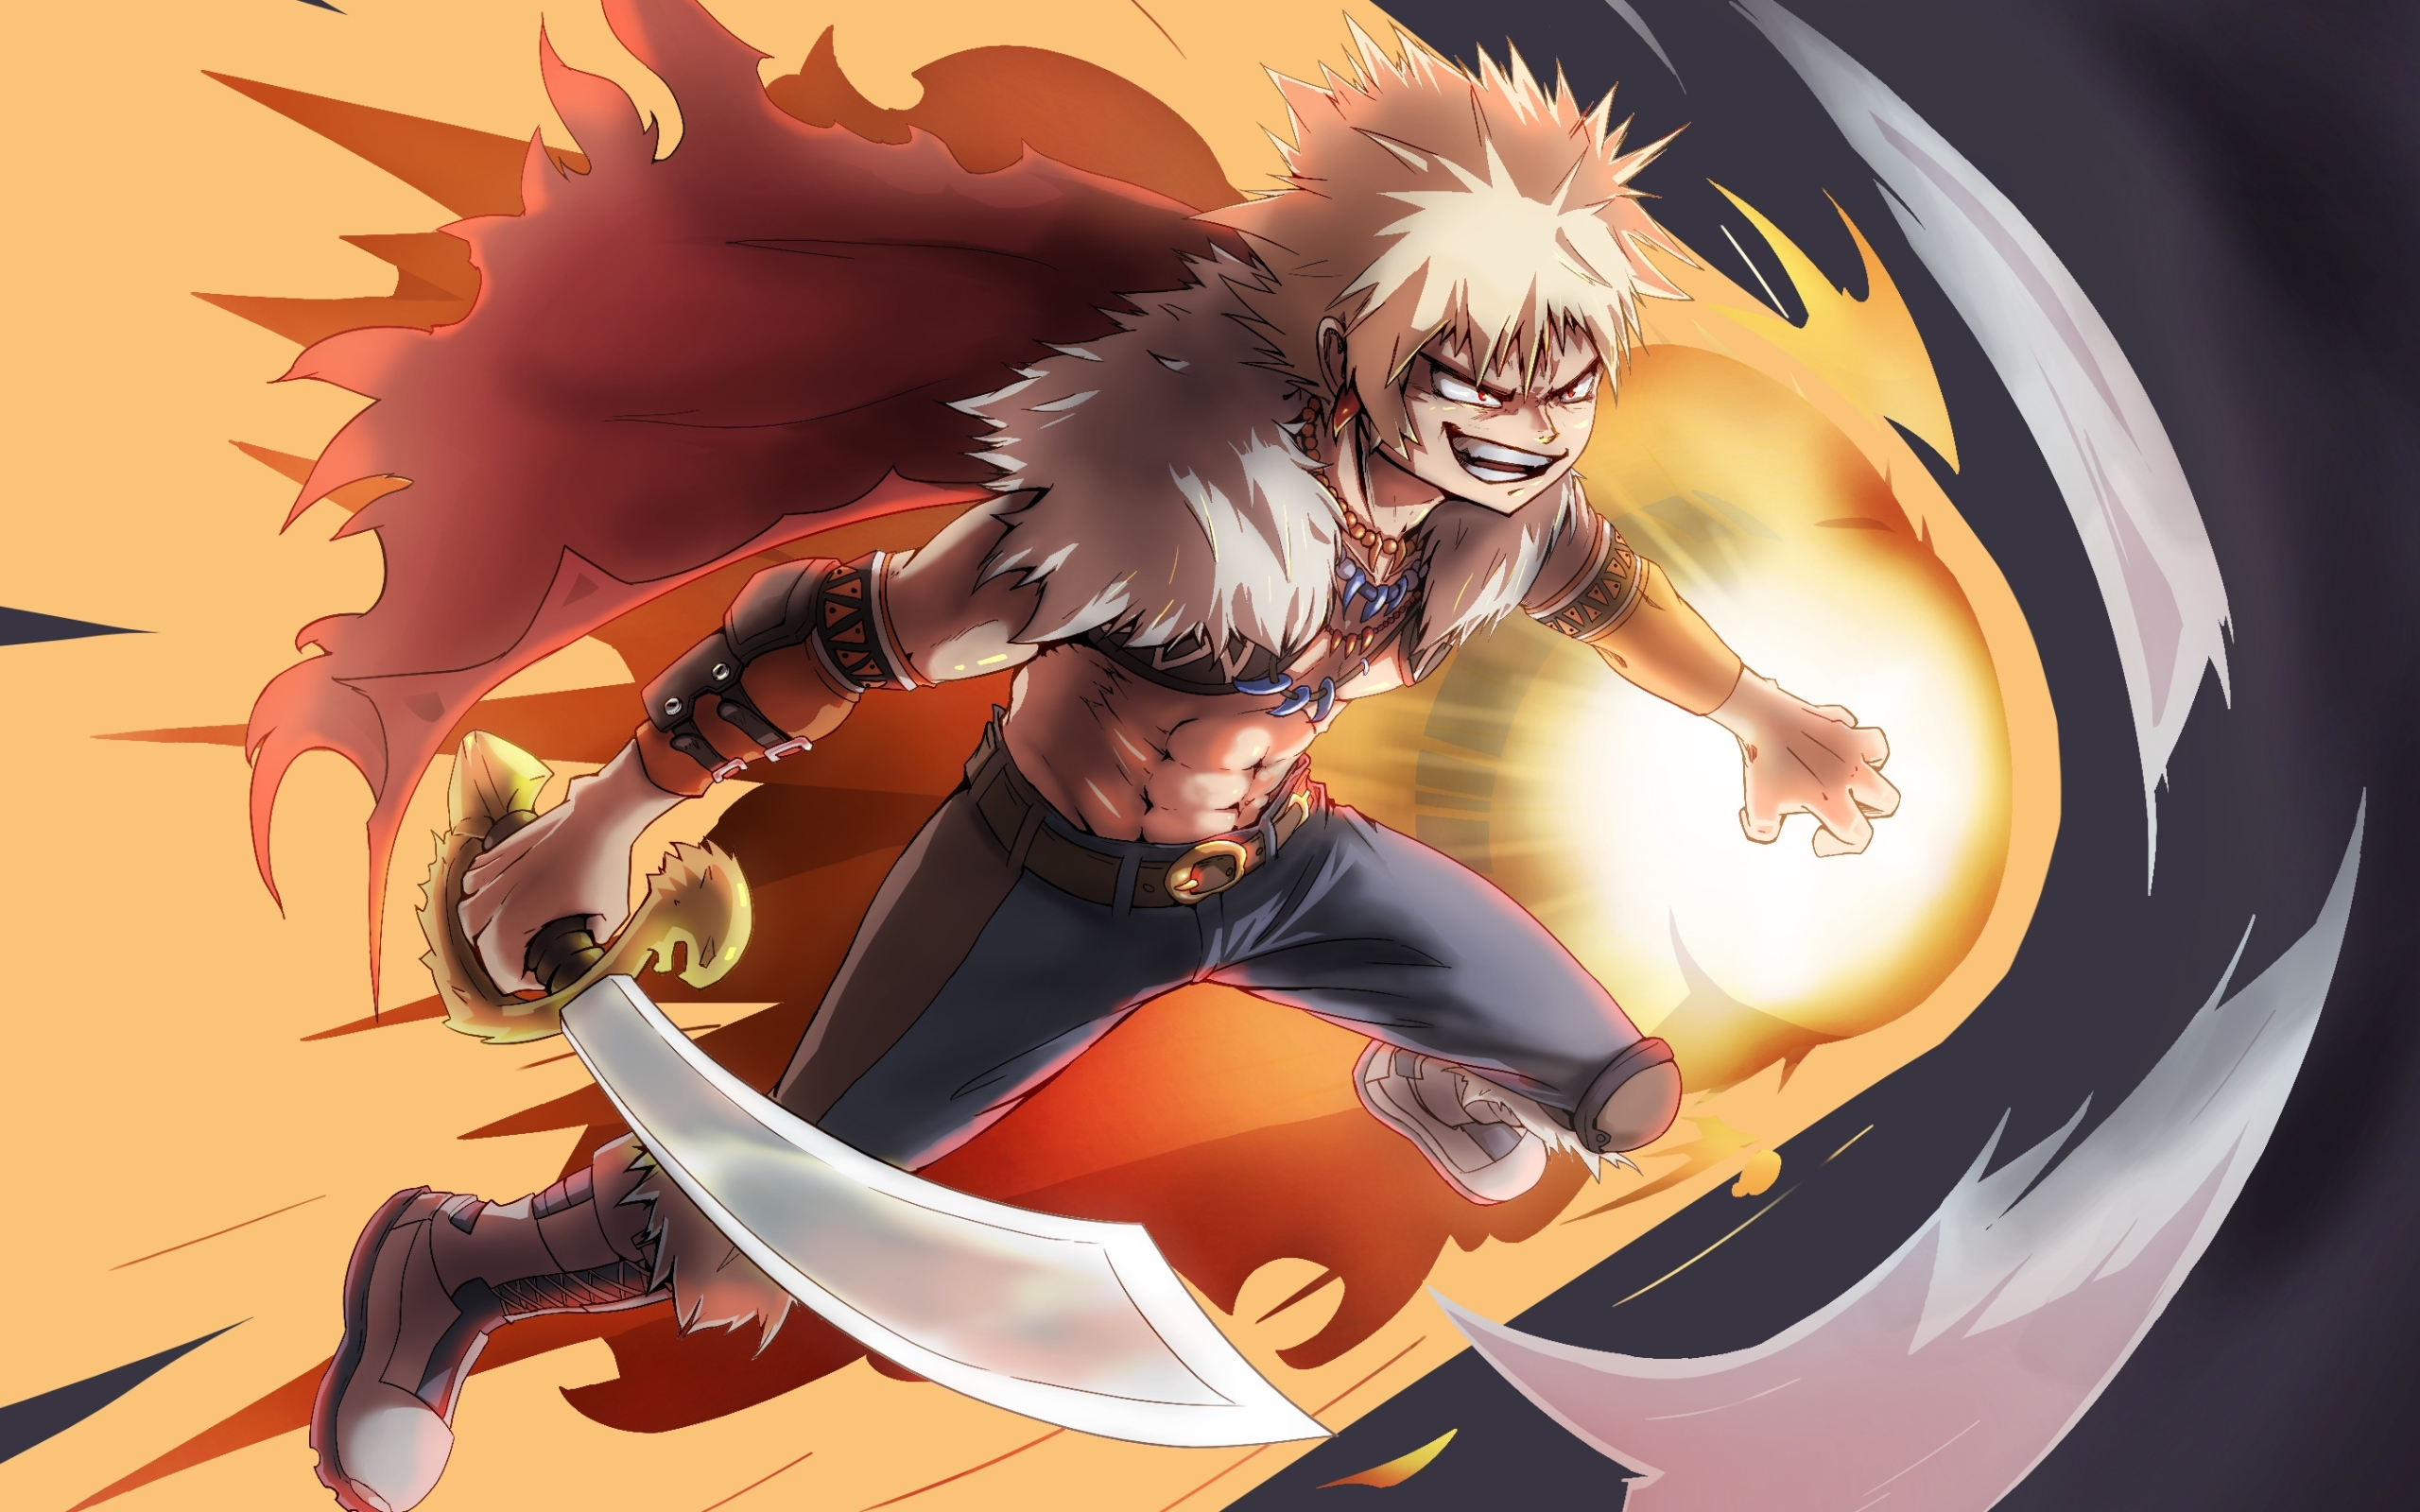 Wallpaper Of Katsuki Bakugou Fire Anime My Hero Academia